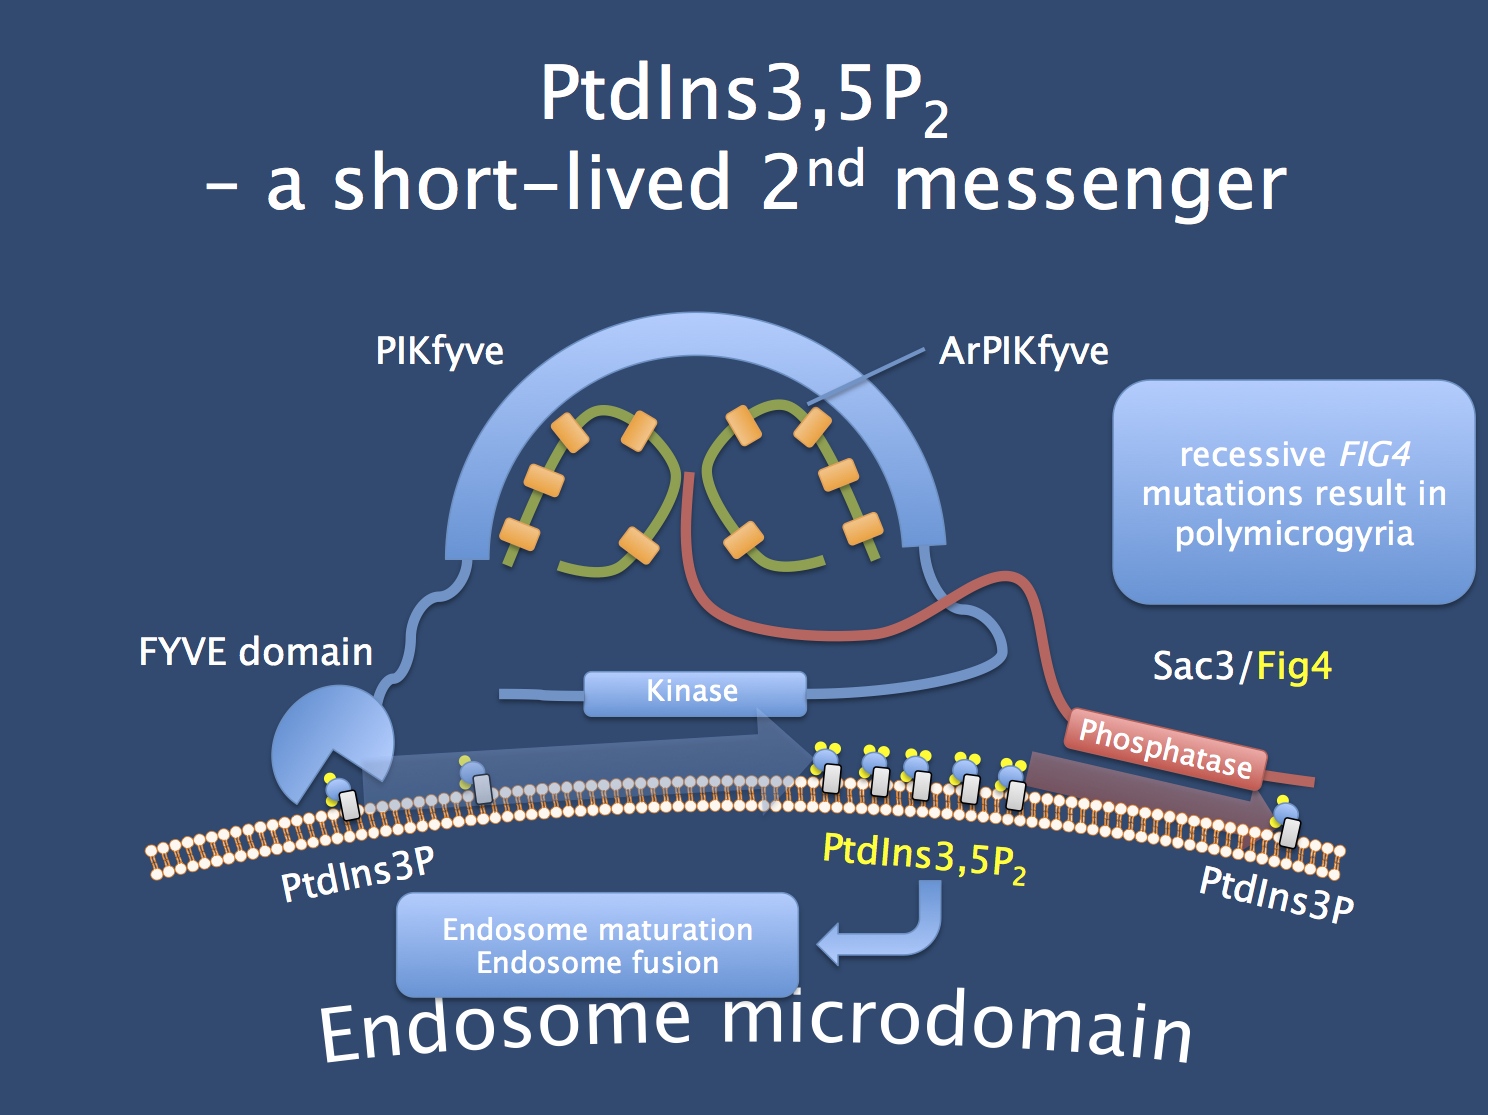 Hypothesized structure of the PIKfyve-ArPIKfyve-Sac3 core complex that generates and cleaves PtdIns3,5P2. This phosphoinositide is a rare and very short lived second messenger whose effector proteins are still largely unknown. Disrupting the physiology of PtdIns3,5P2 metabolism severe disrupts endosome trafficking. Mutations in FIG4, the phosphatase within this complex, result in Yunis-Varon syndrome, a skeletal malformation syndrome with severe neurological impairment, and in Charcot-Marie-Tooth disease type 4J. In their recent publication, Baulac and collaborators identify recessive mutations in FIG4 in a Moroccan family with polymicrogyria and epilepsy. (Figure adapted from http://www.biochemj.org/csb/002/csb002.pdf)